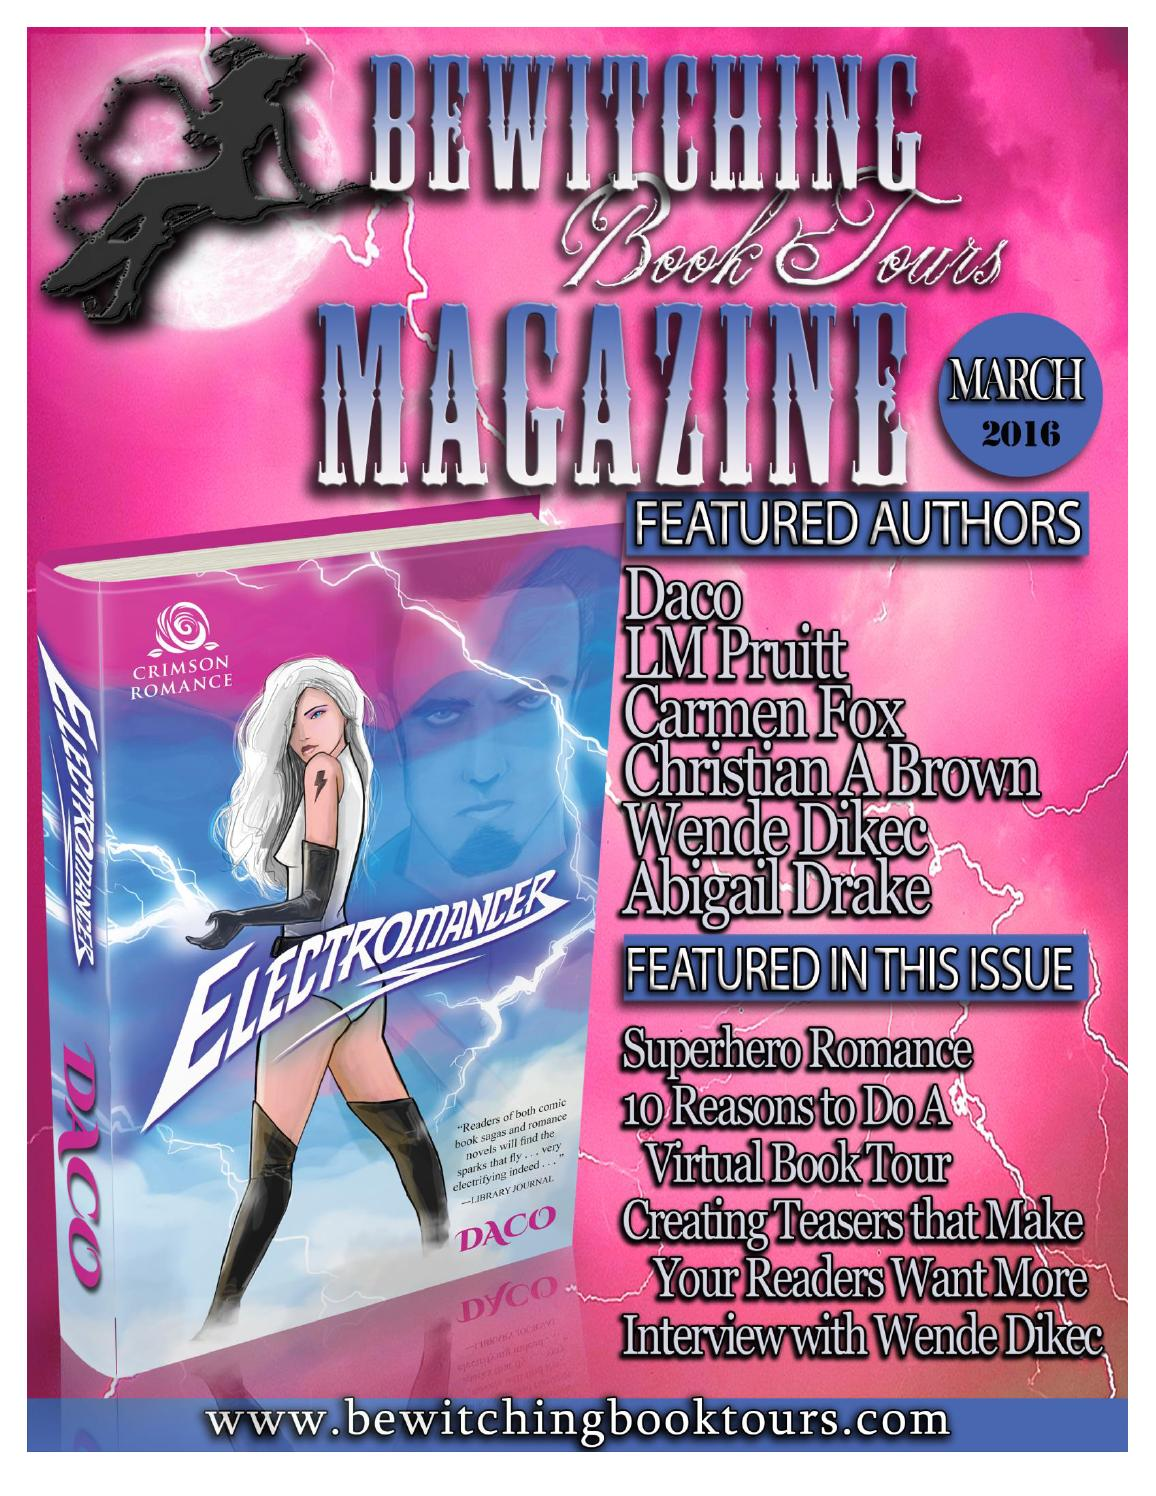 March 2016 Bewitching Book Tours Magazine by Bewitching Book